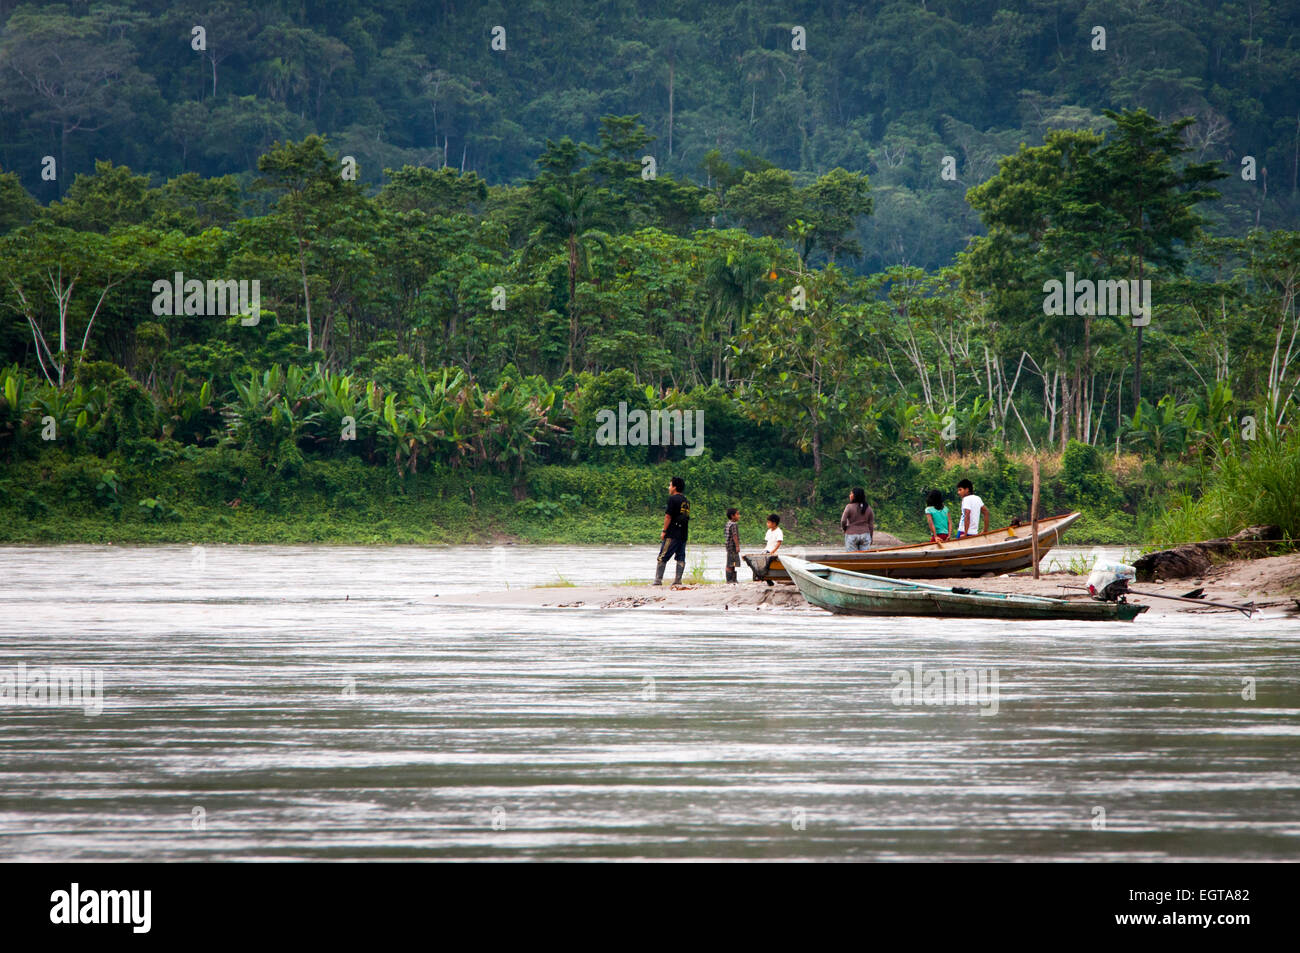 Local men, women and children with boats on the sandy bank of Amazon region river of northern Peru - Stock Image